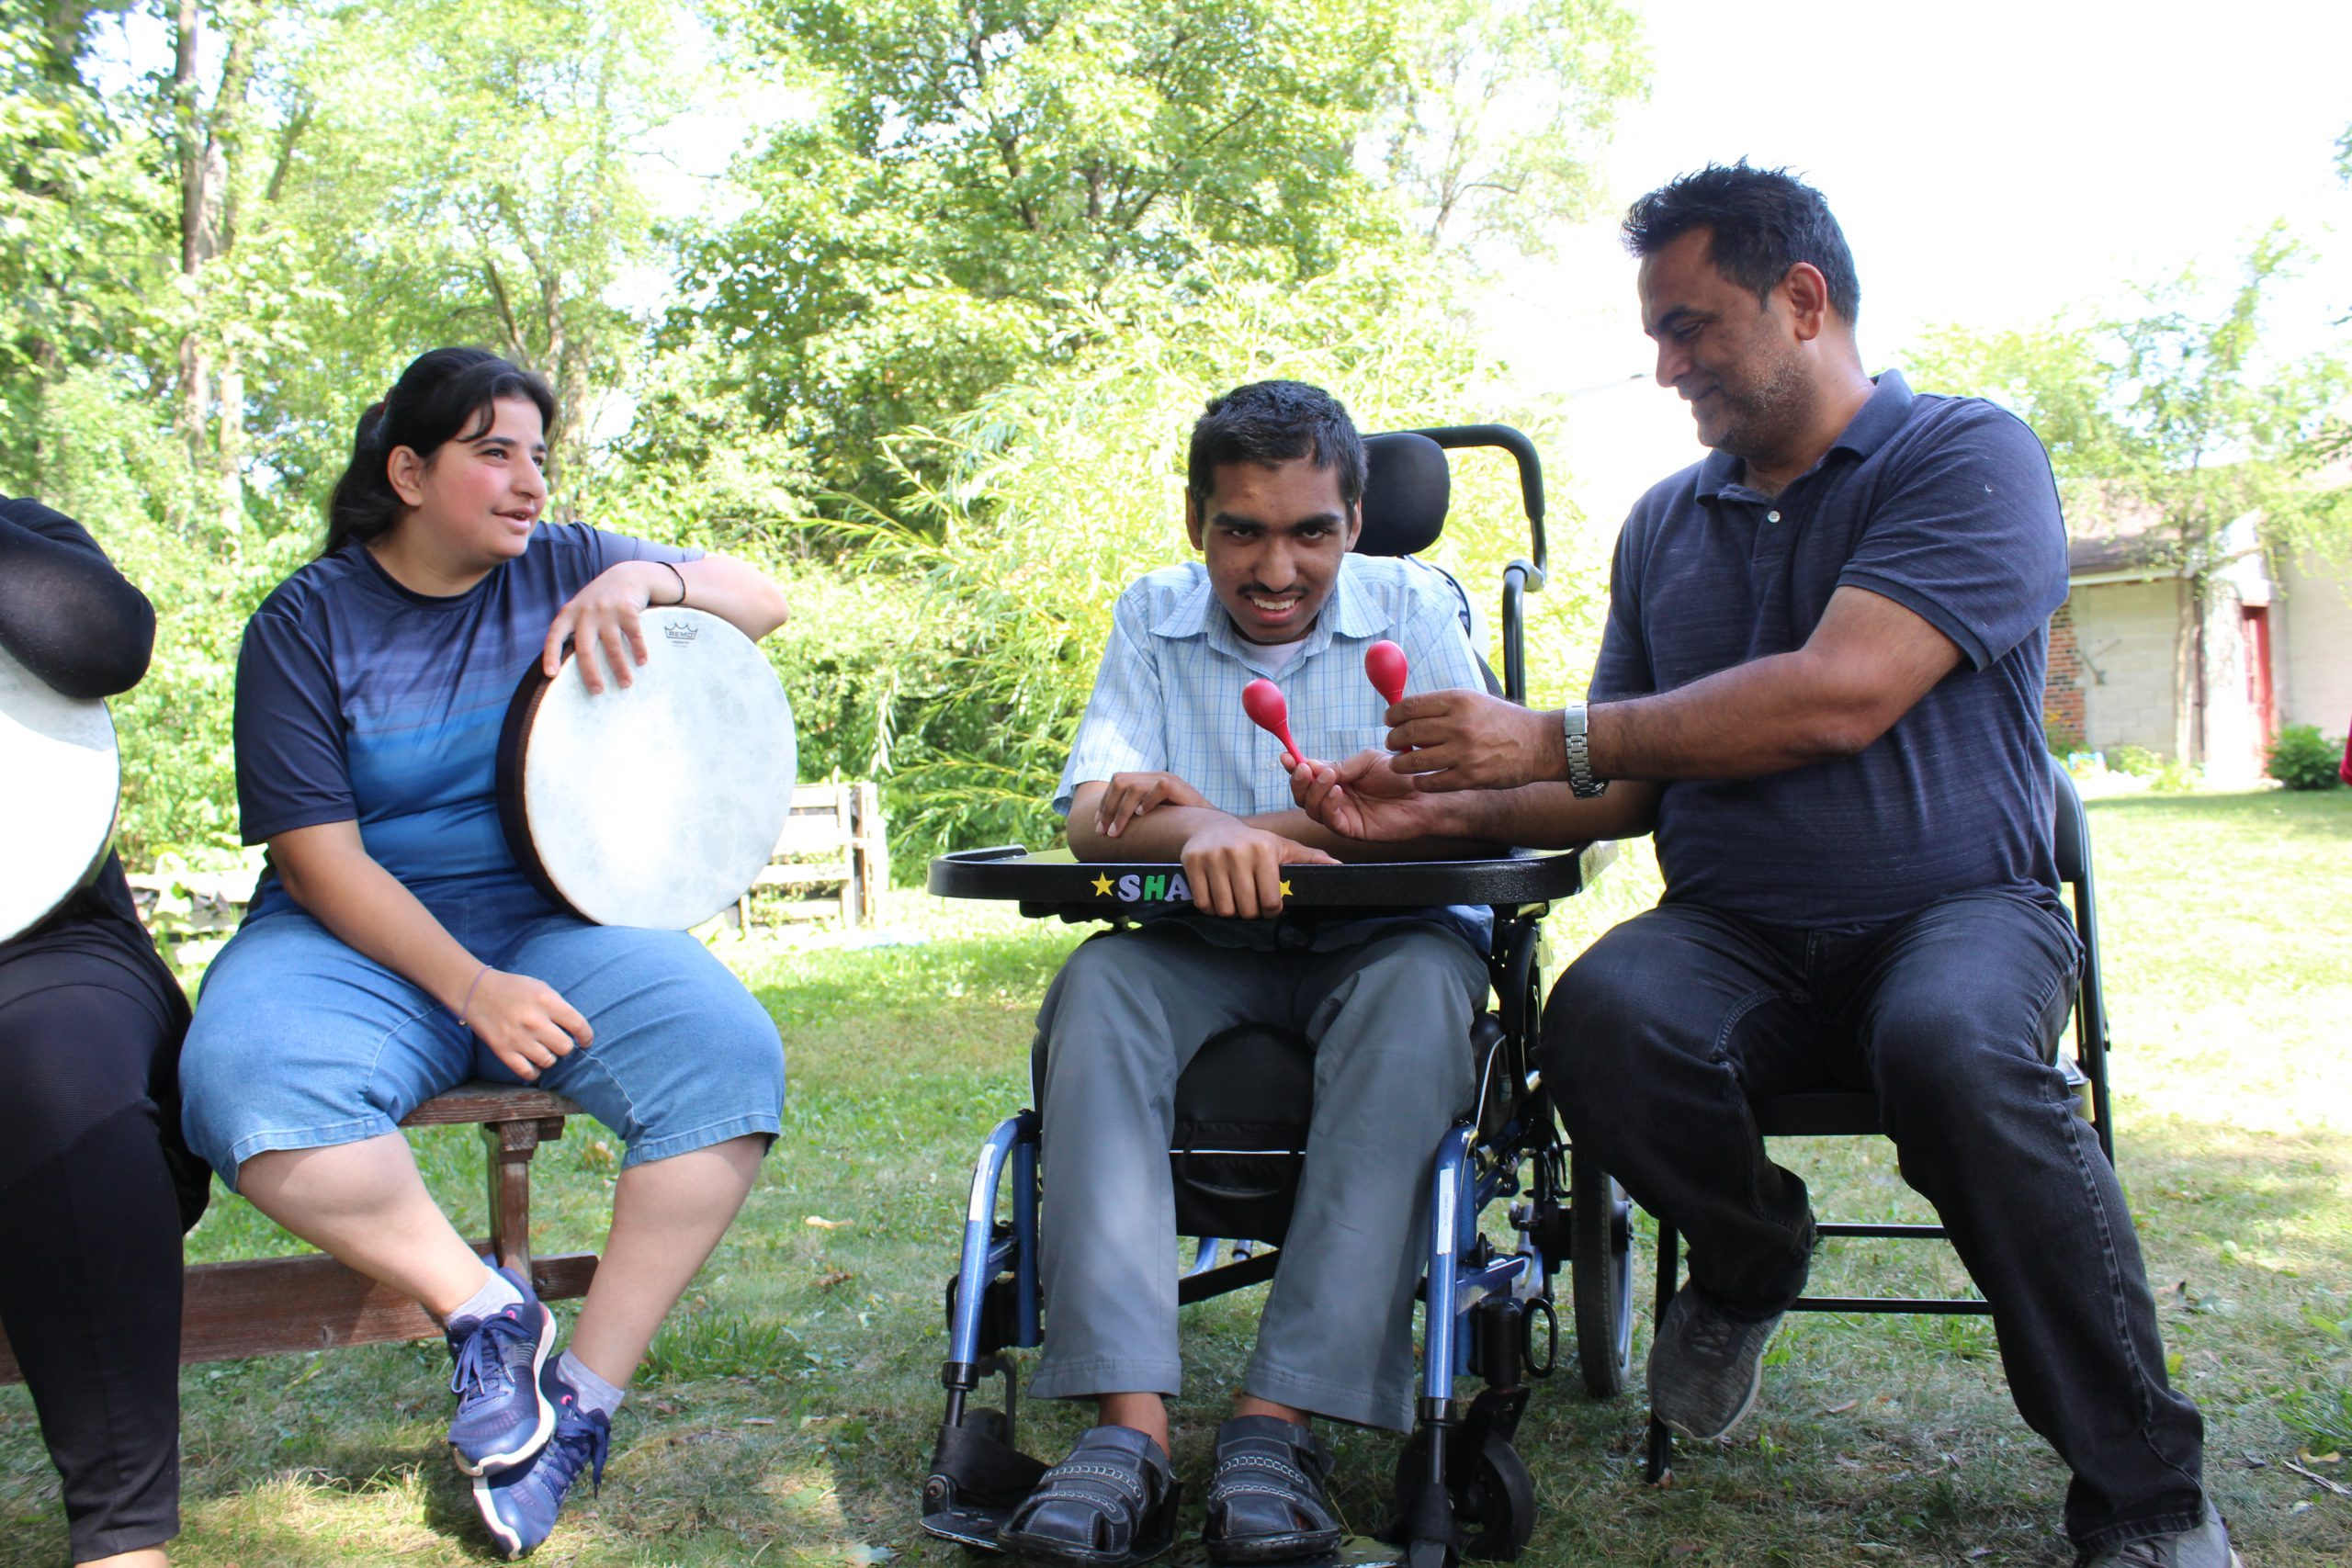 One male staff sitting outdoors on the right side offering shakers to the participant. Male participant being offered shakers is in manual wheelchair in the middle with female participant holding a duff sitting beside him on a bench.